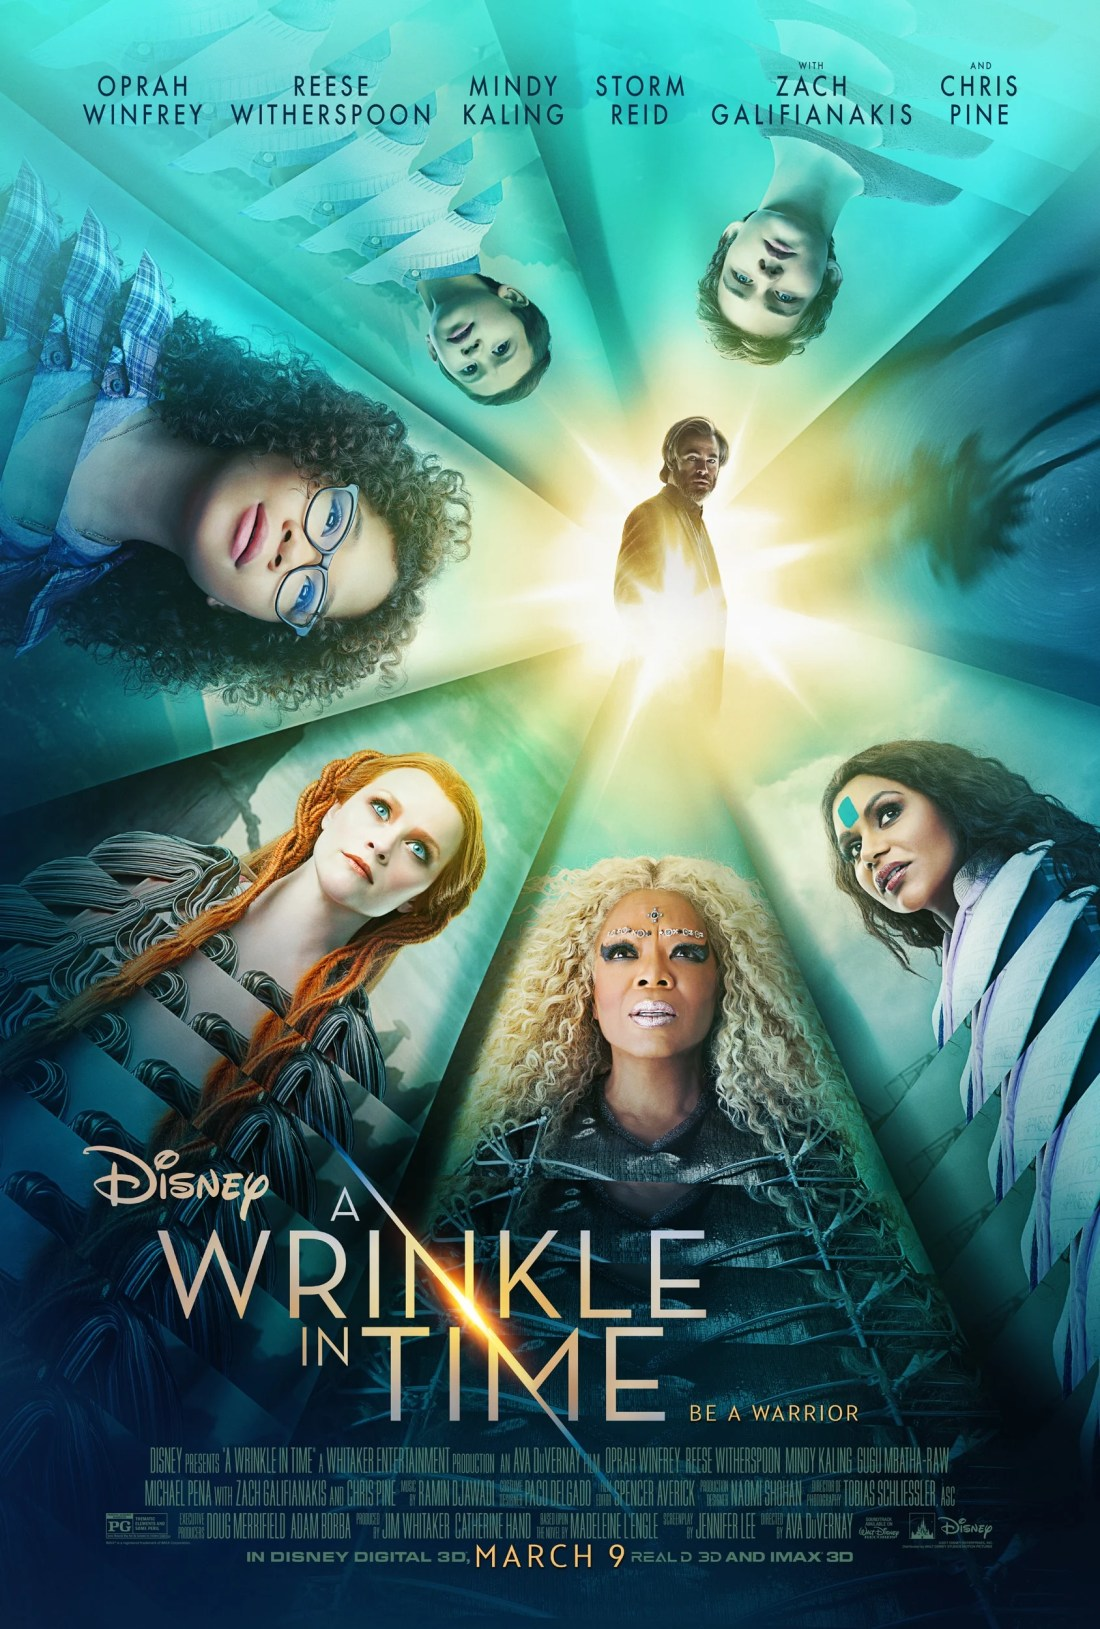 Disney's A Wrinkle In Time Movie Poster, set to release March 9, 2018.